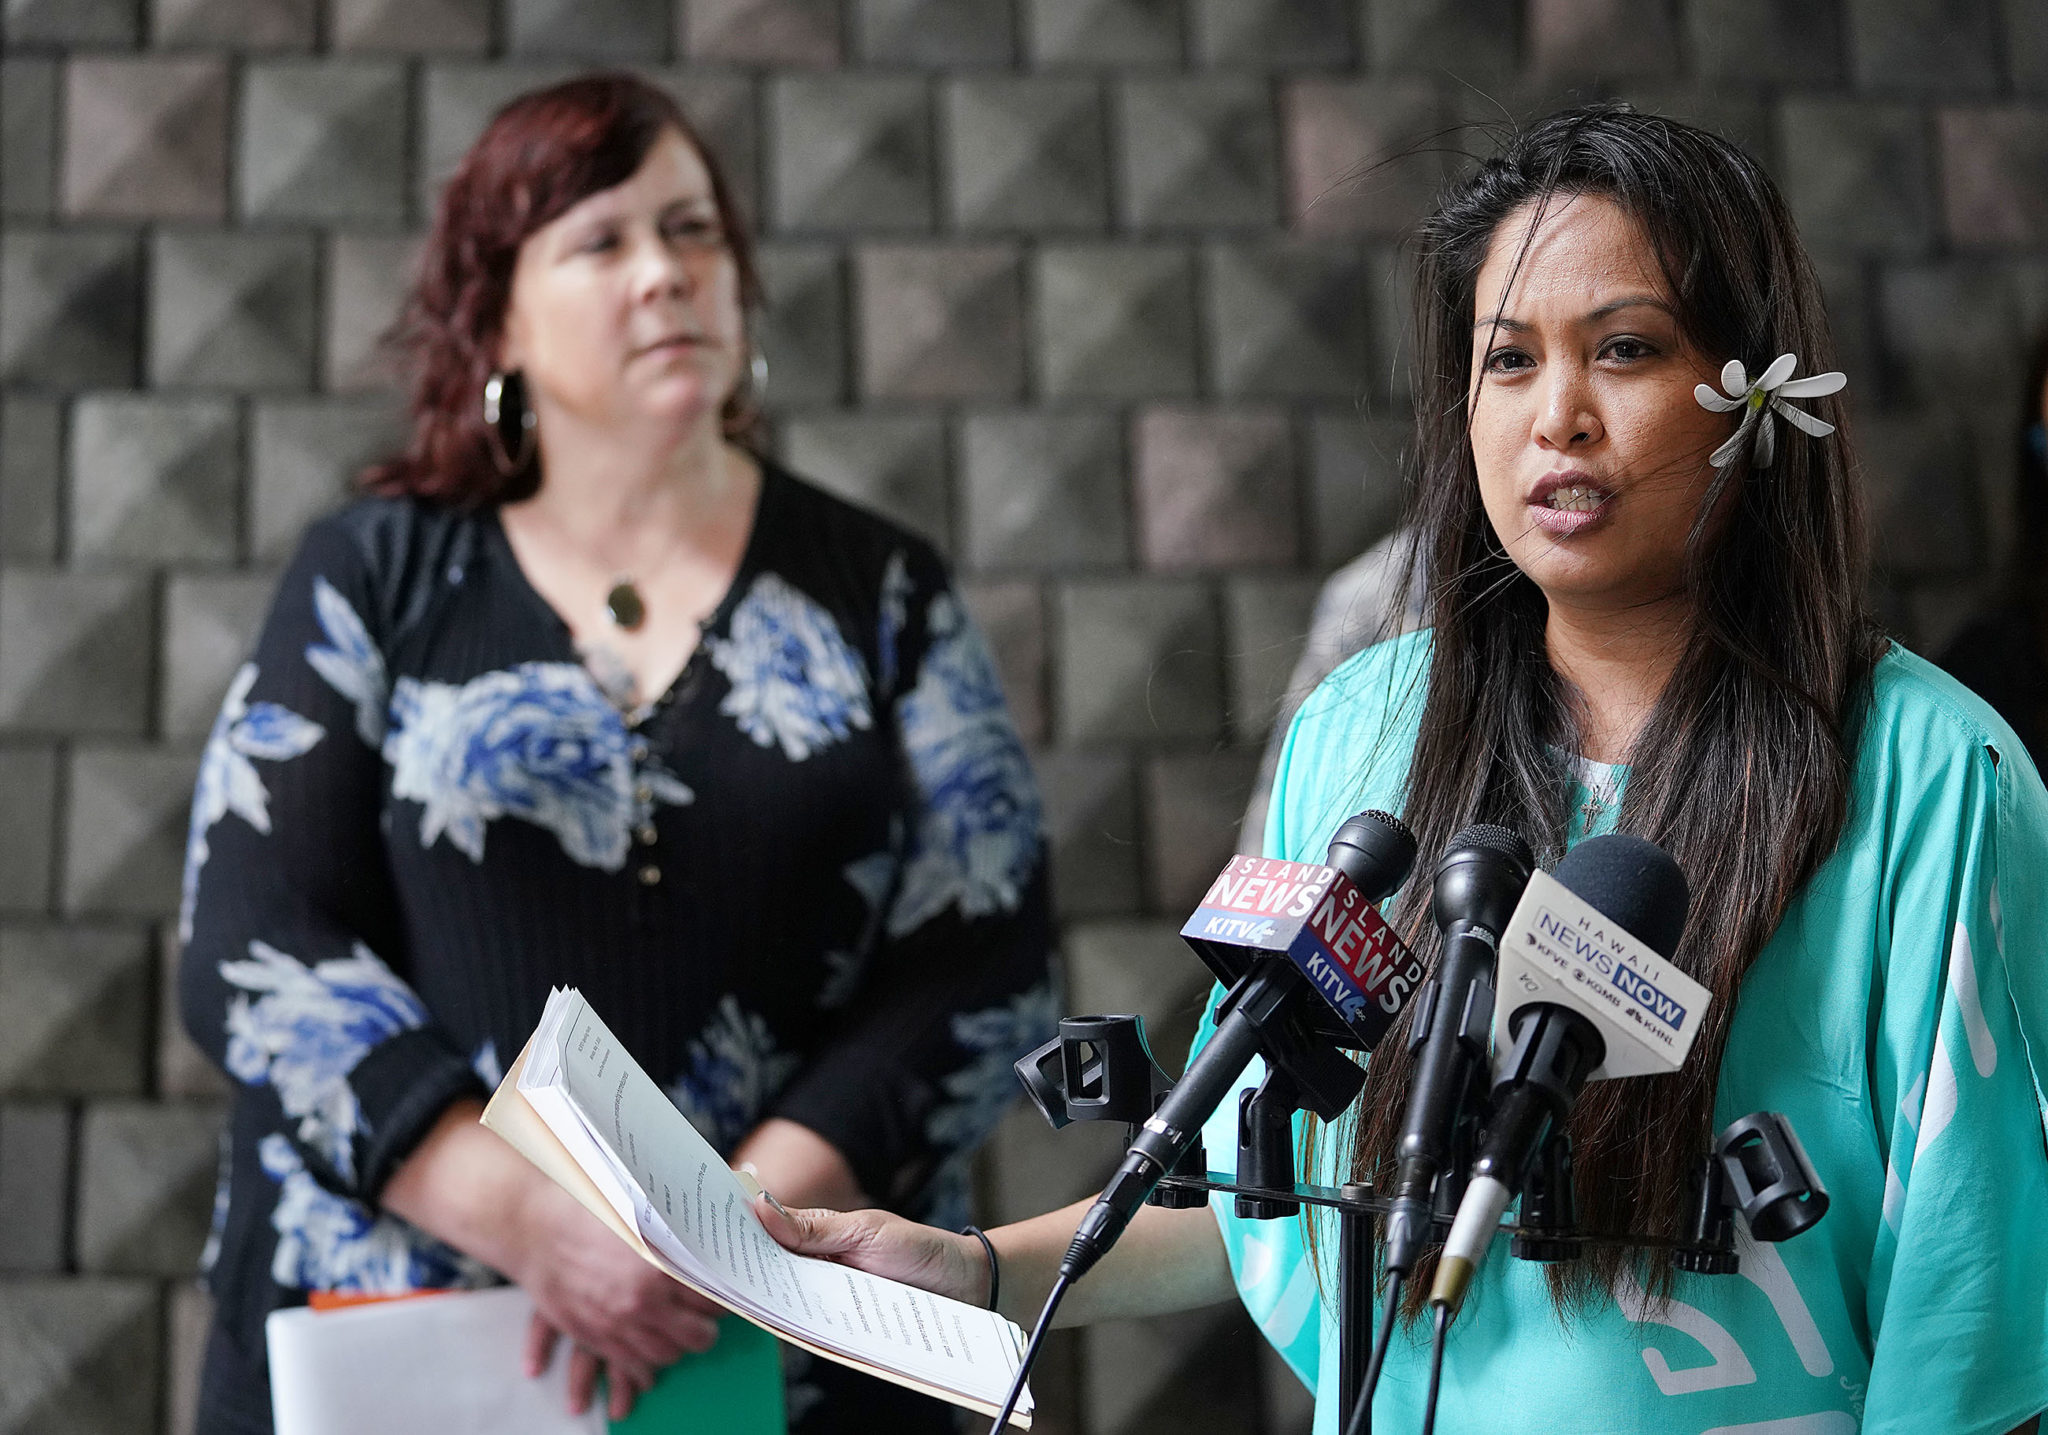 Brandee Menino Chair Hope Services Hawaii and left, Heather Lusk during homeless count press conference held at the Capitol Rotunda.